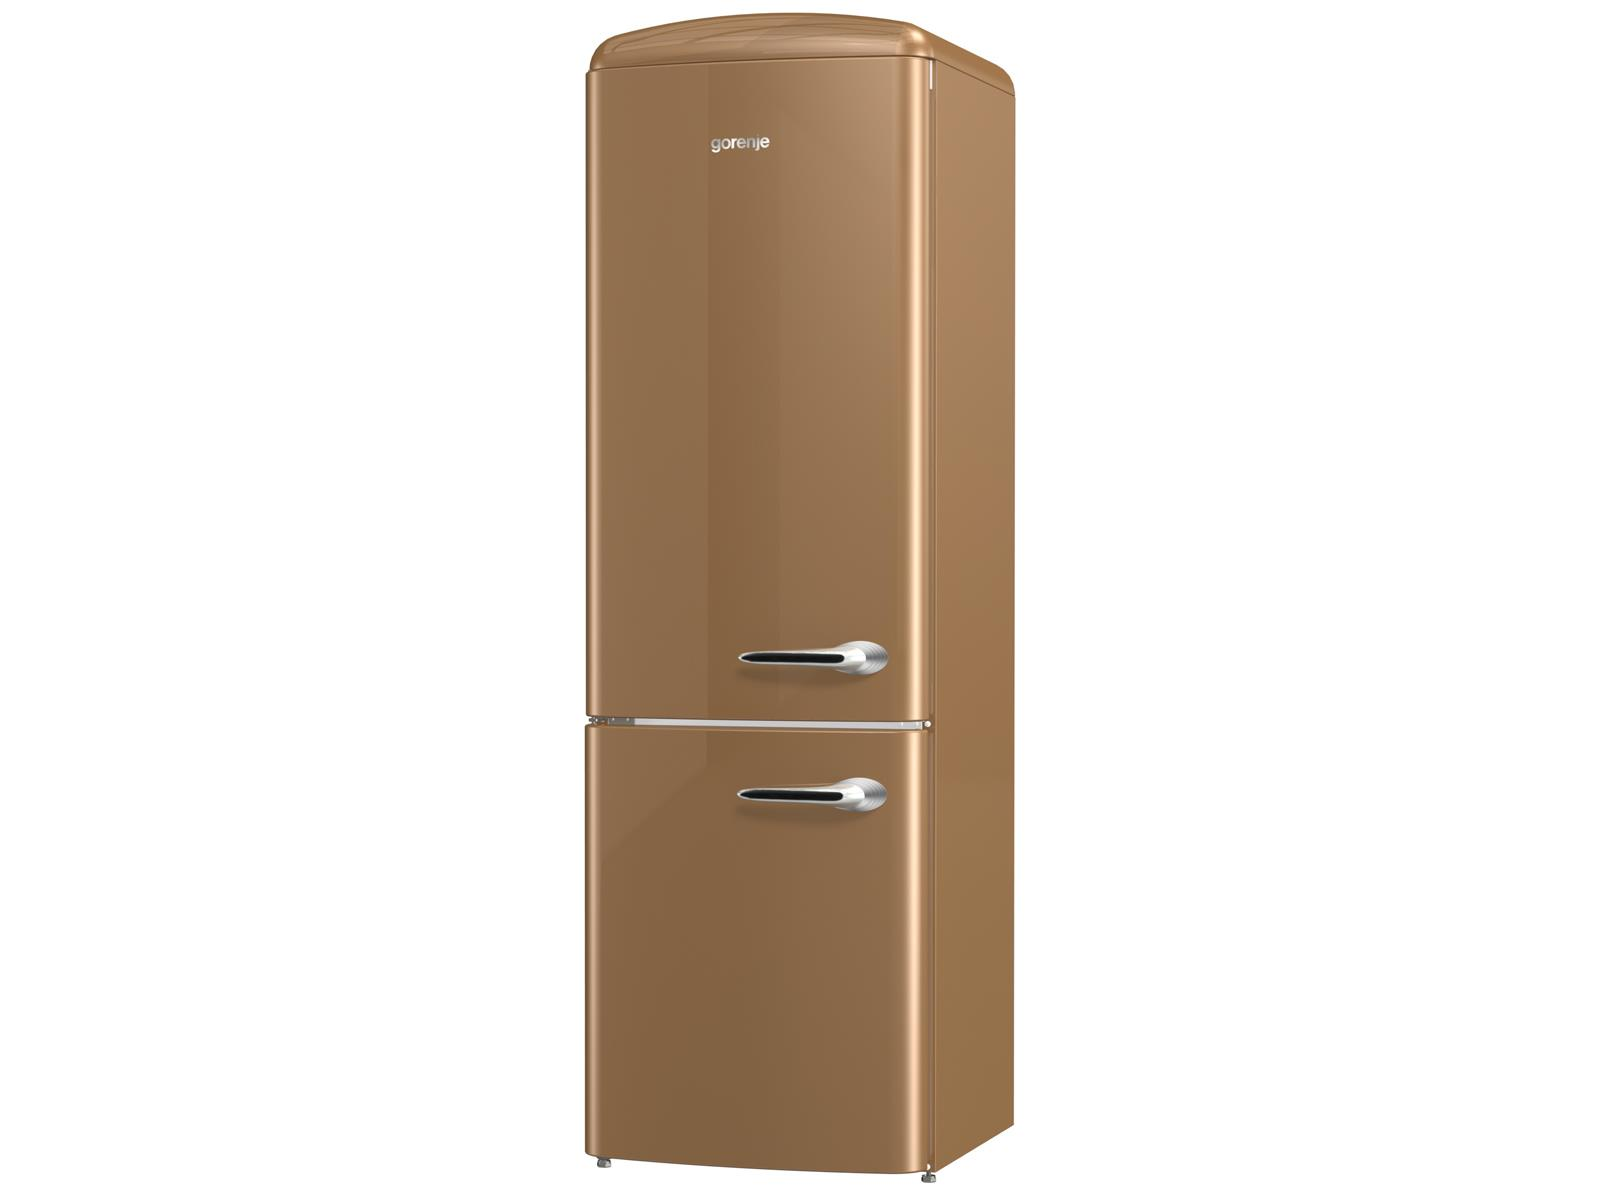 Gorenje Kühlschrank Retro Weiß : Gorenje ork co l kühl gefrierkombination royal coffee